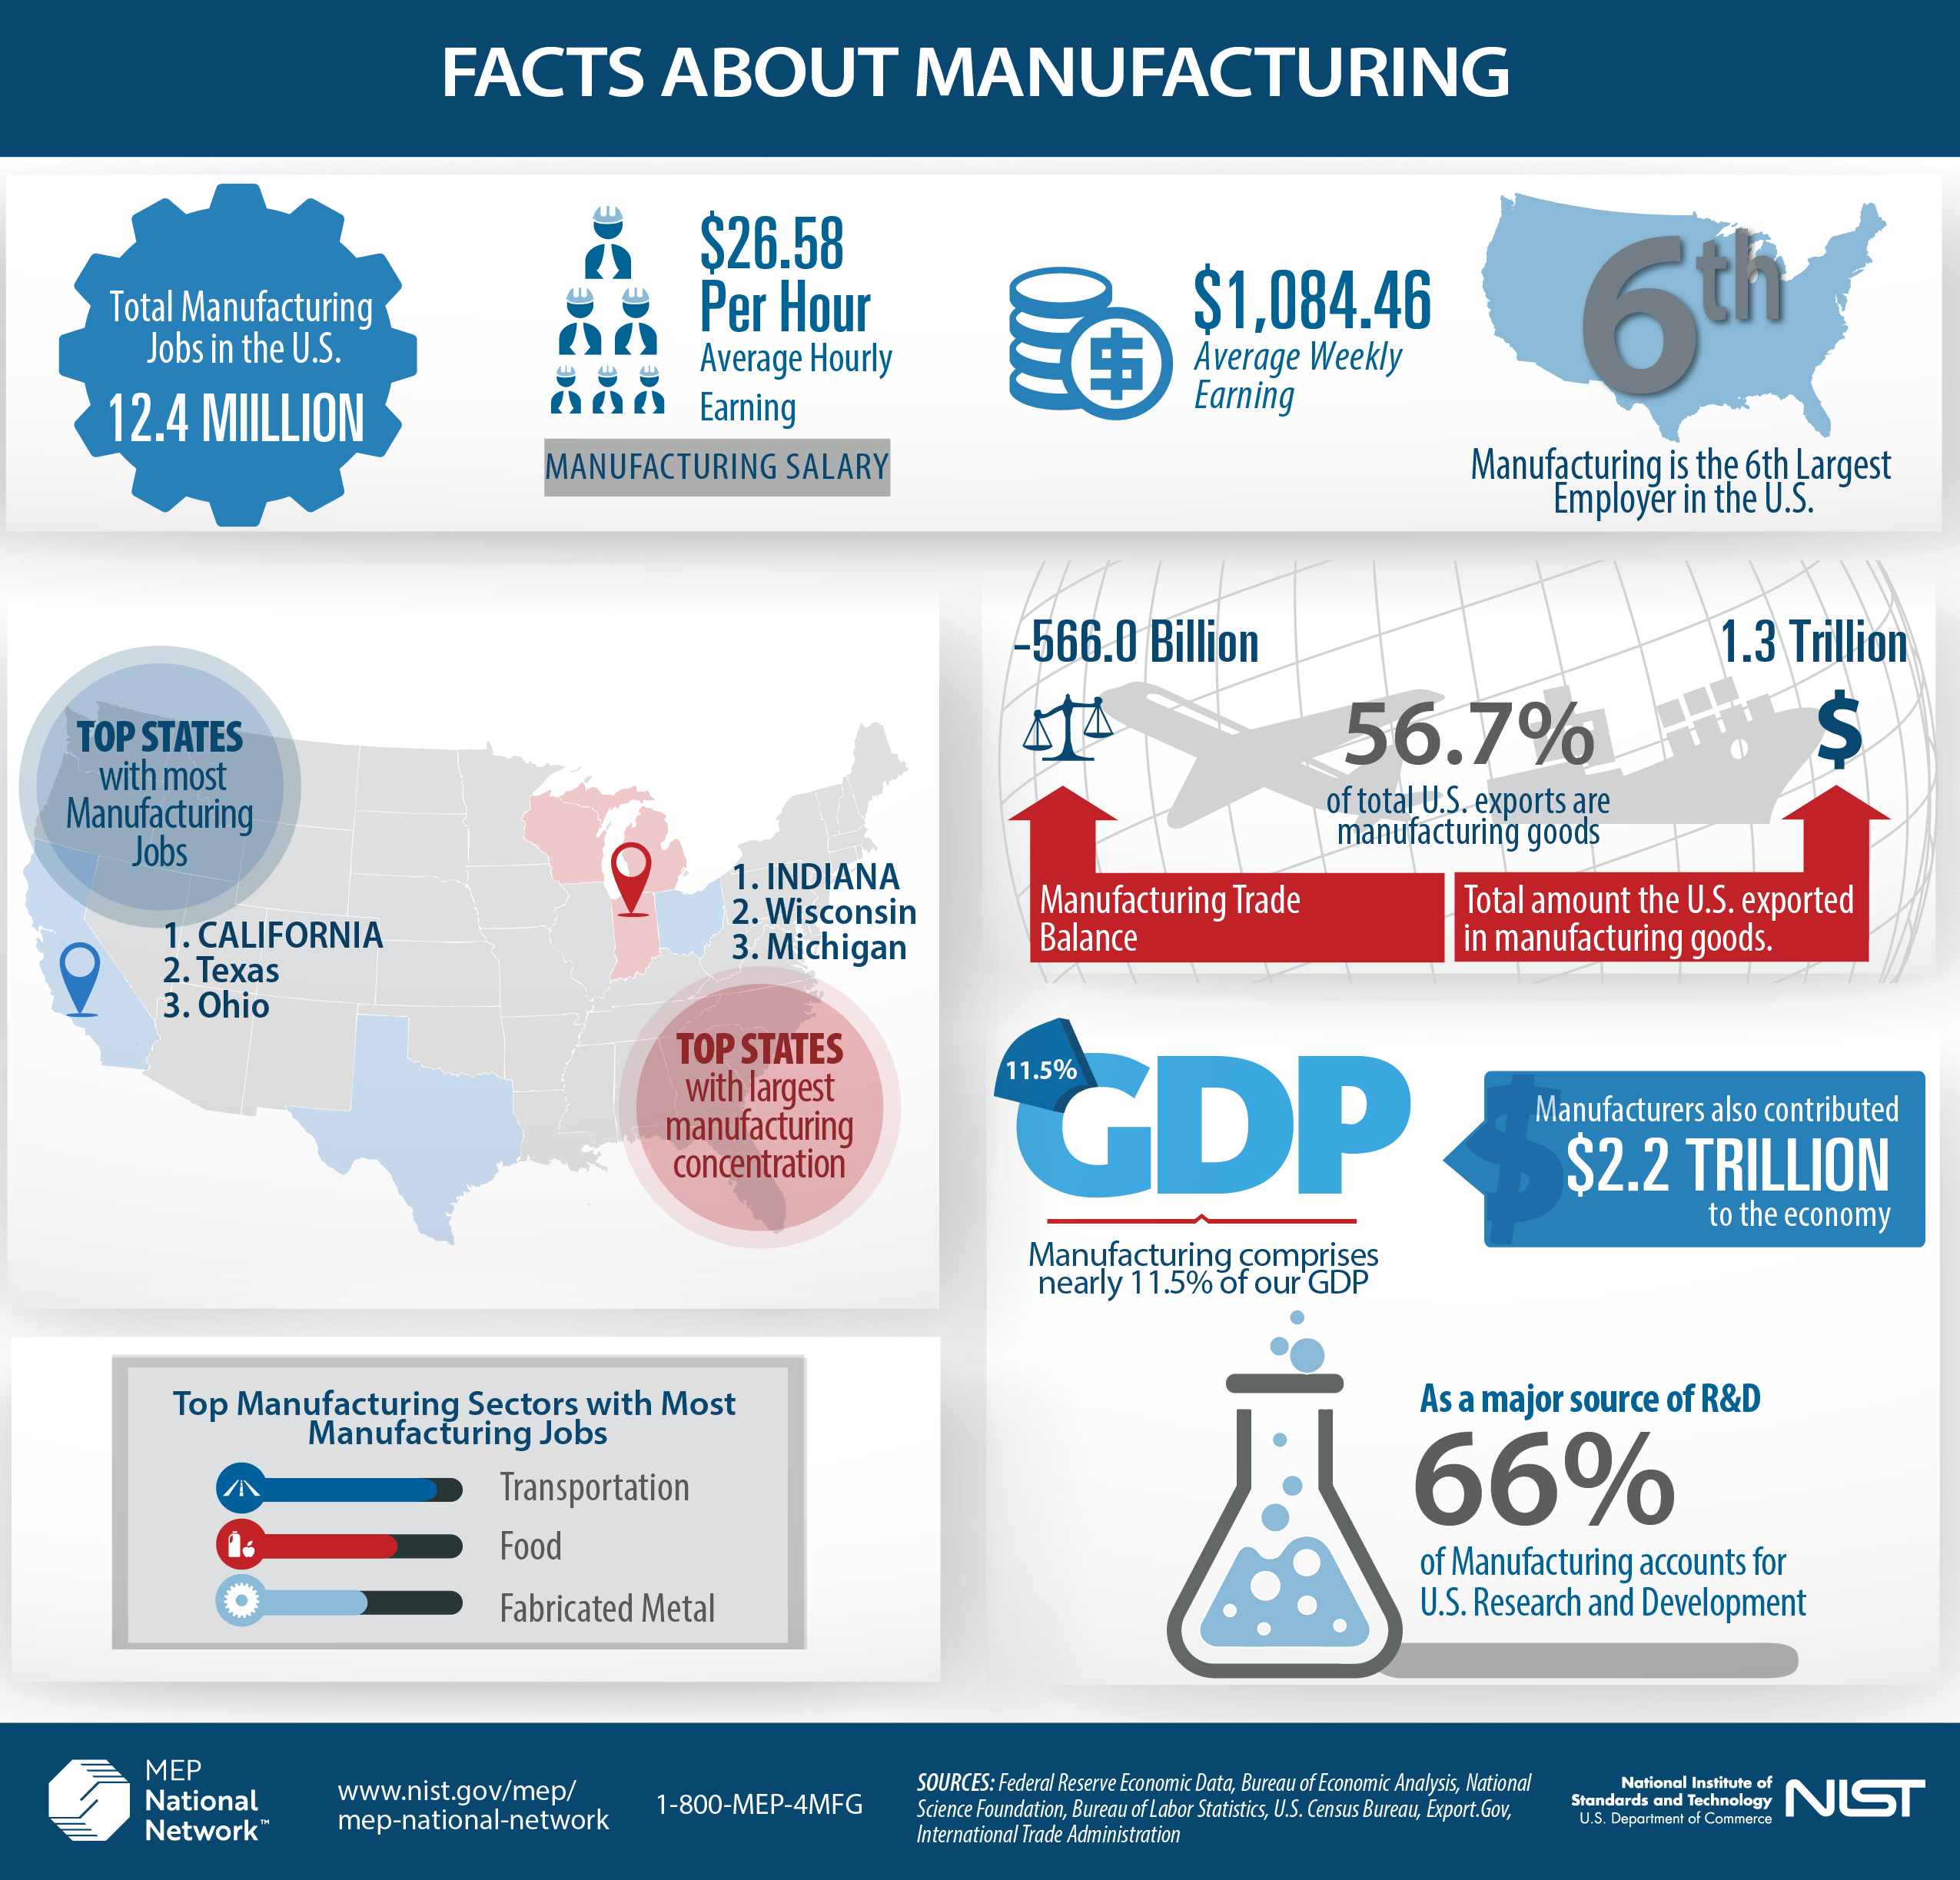 Facts About Manufacturing Infographic